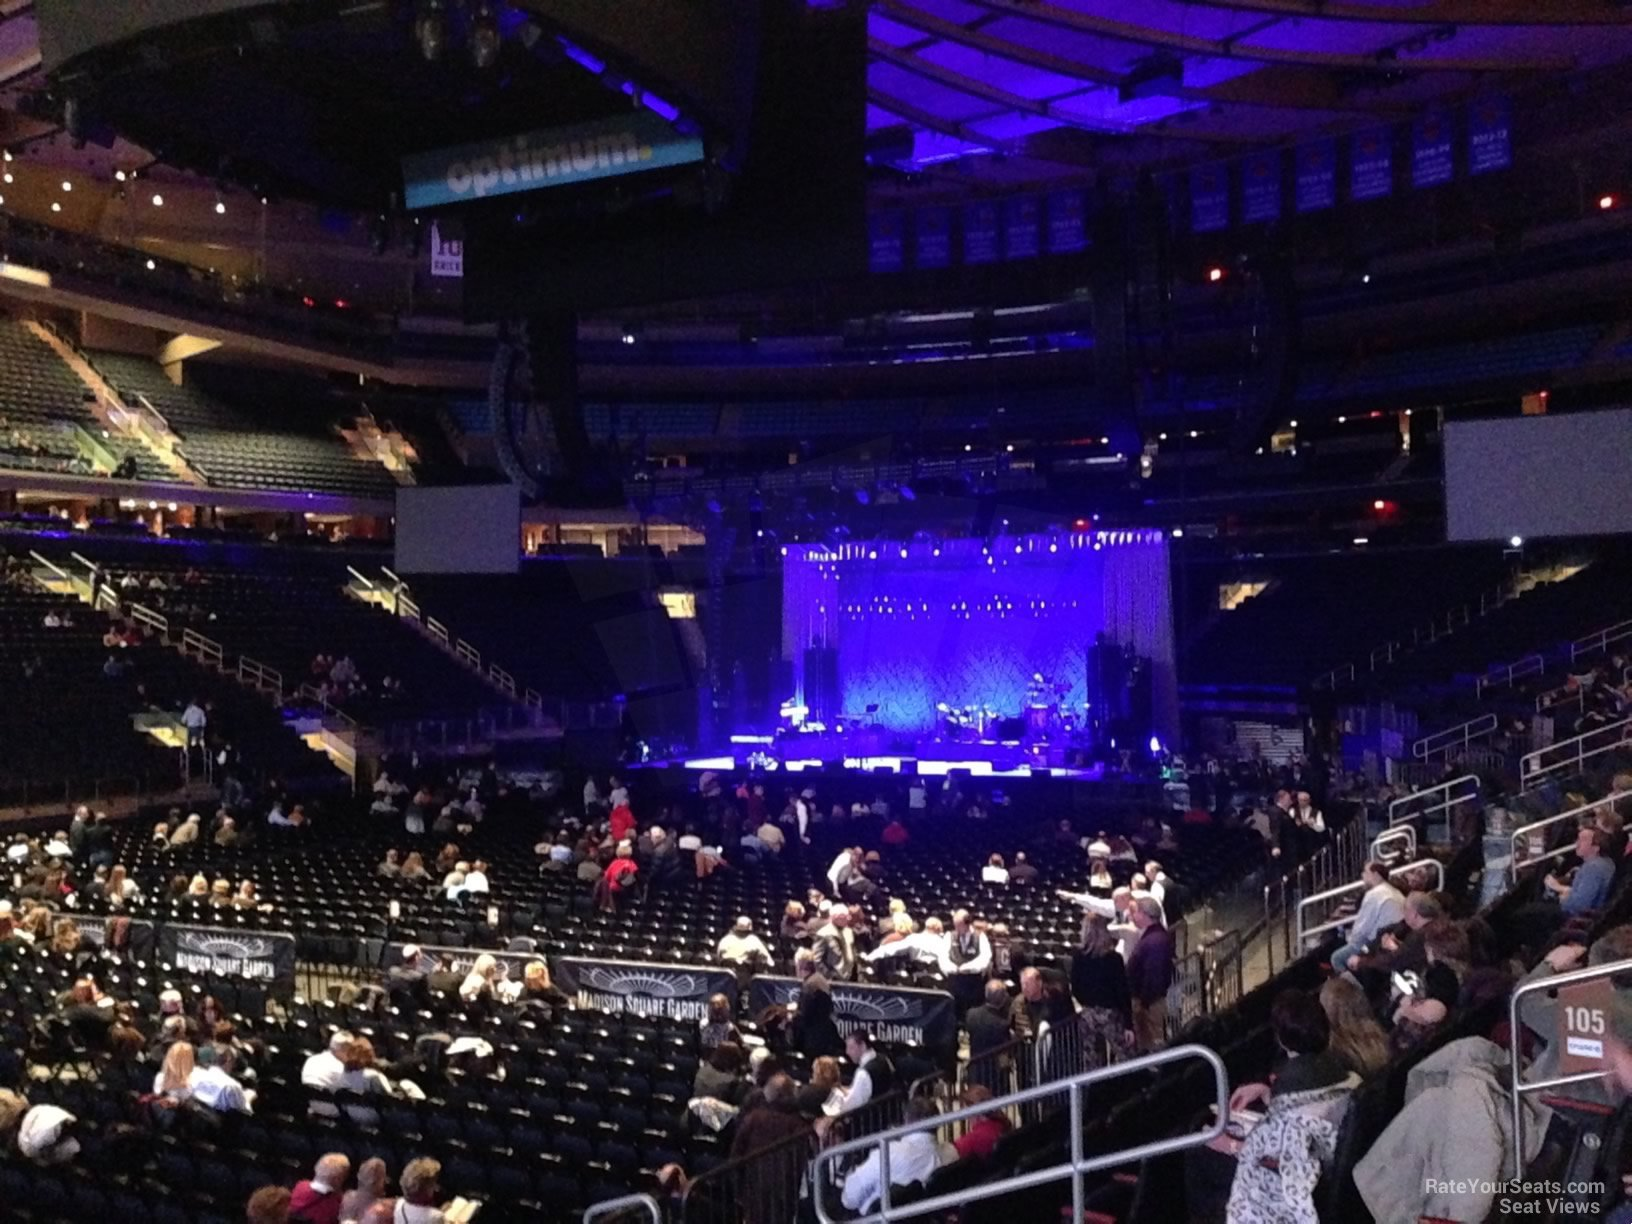 Madison square garden events schedule garden ftempo - Madison square garden event schedule ...